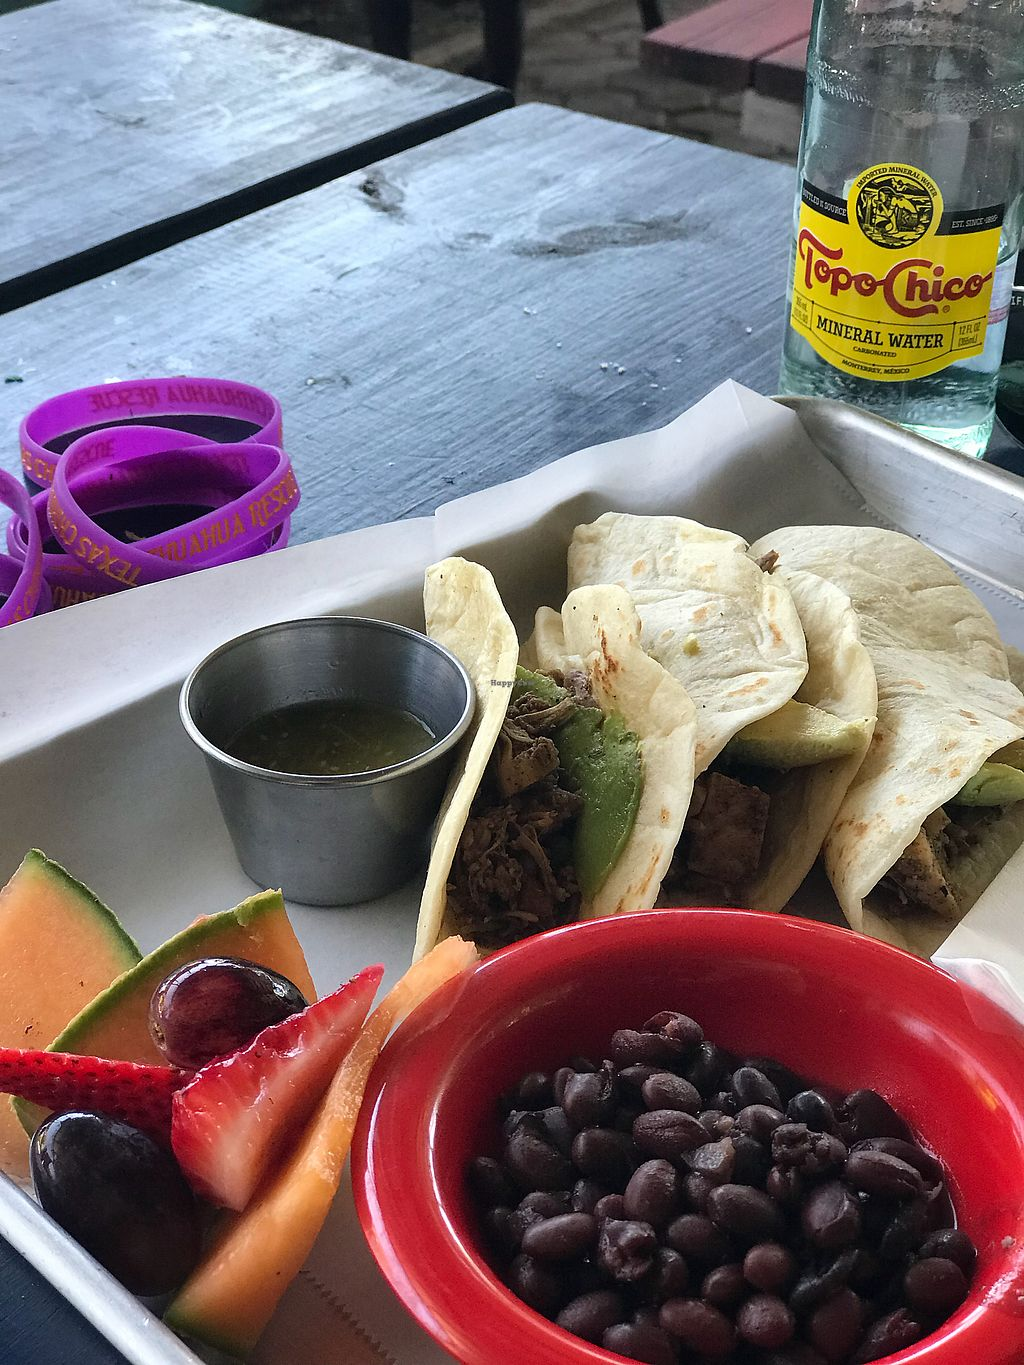 "Photo of La Botanica  by <a href=""/members/profile/modelmd"">modelmd</a> <br/>Barbacoa jackfruit tacos <br/> April 15, 2018  - <a href='/contact/abuse/image/62870/386550'>Report</a>"